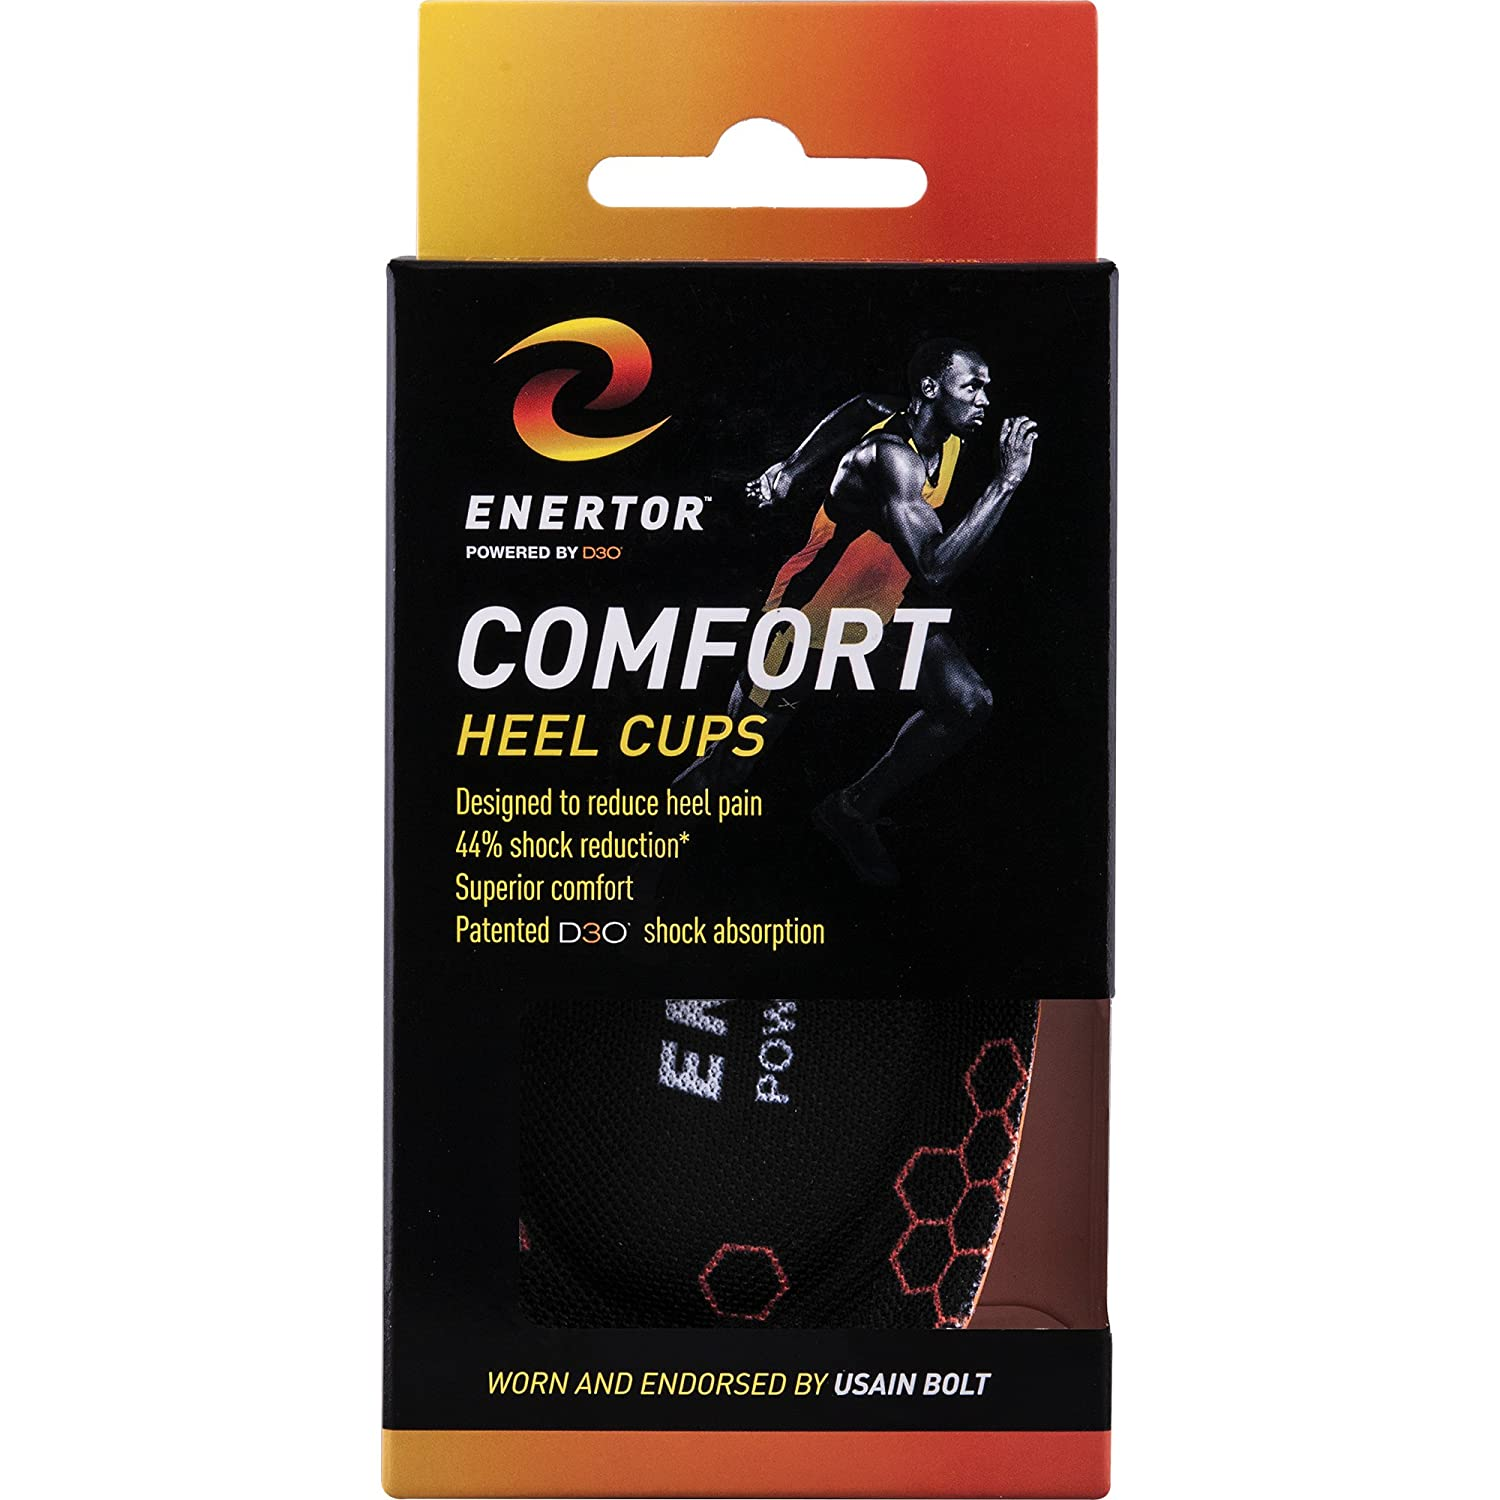 Amazon.com: Enertor Comfort Insole Heel Cup, Small 4-6: Health & Personal Care